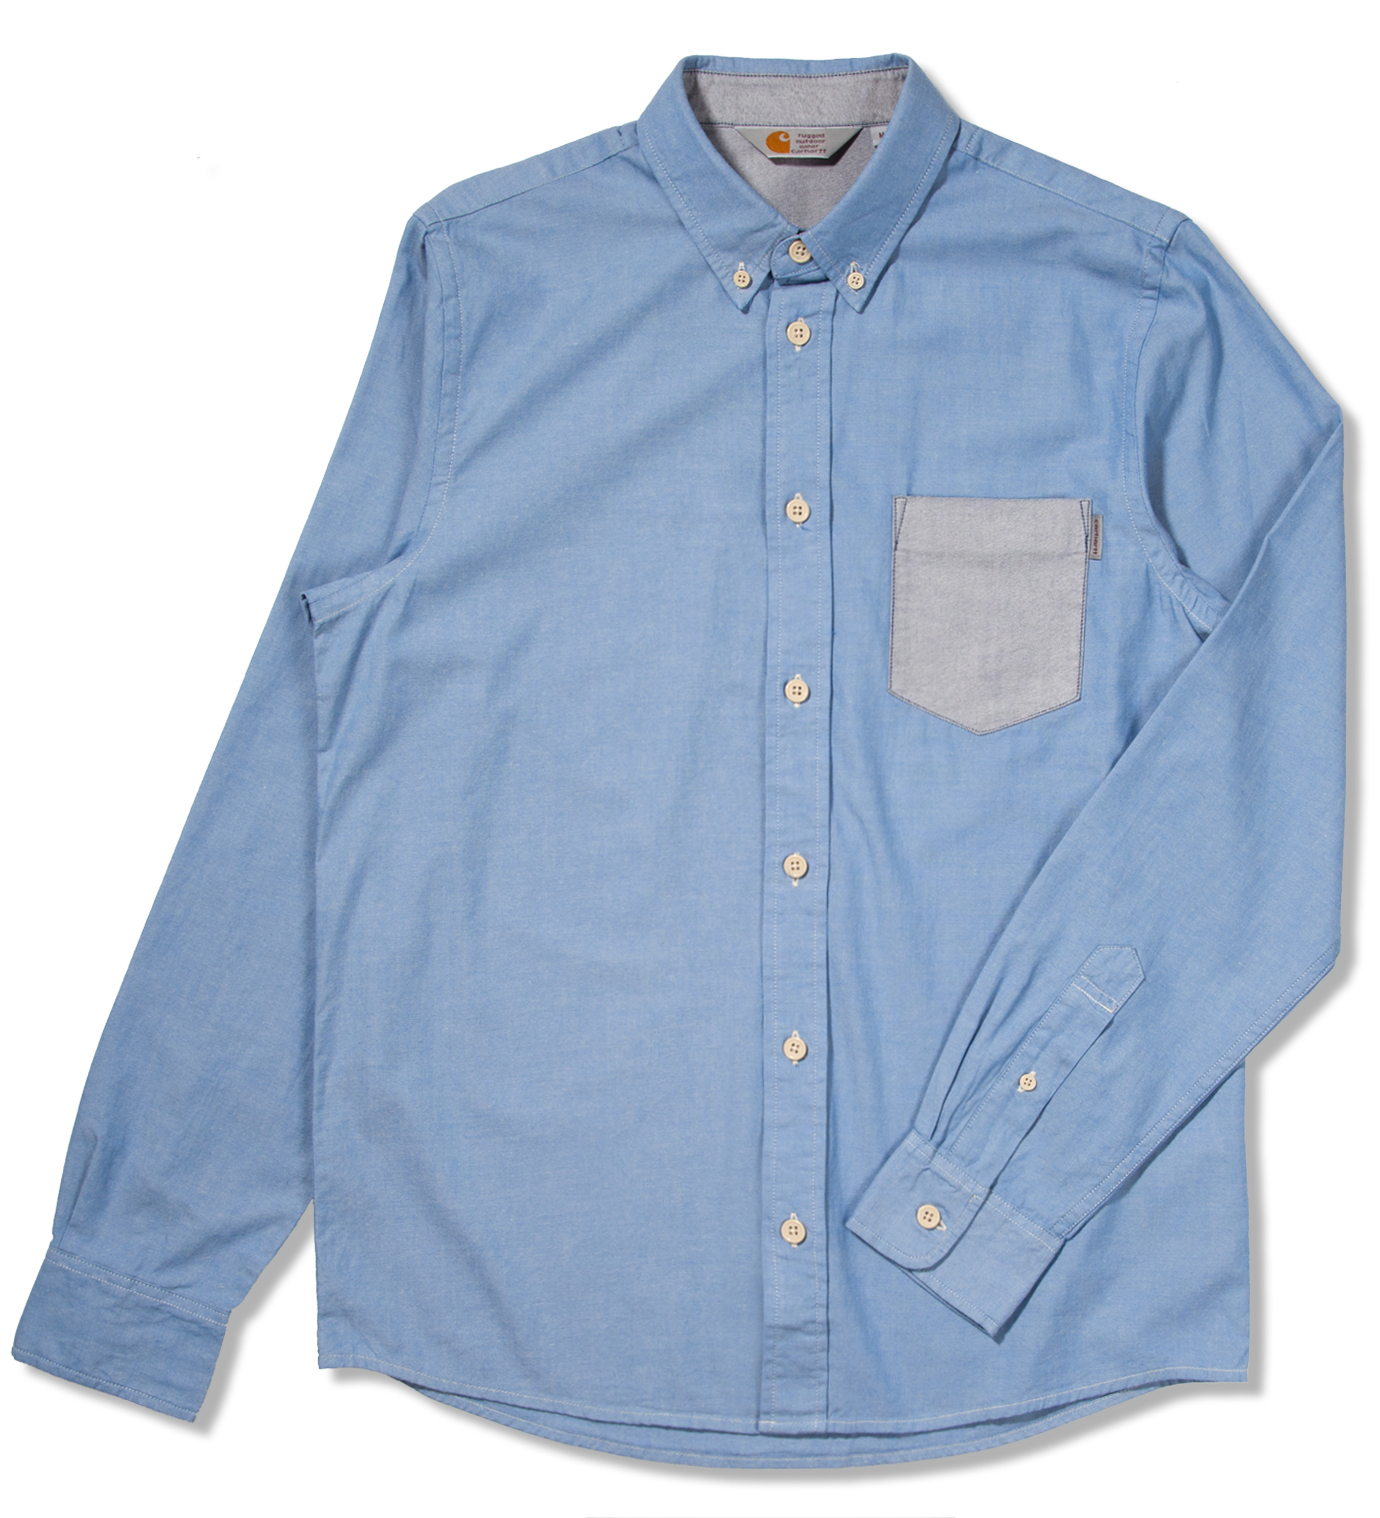 Carhartt WORK IN PROGRESS Key West/Blue Stone Washed Alfred Shirt